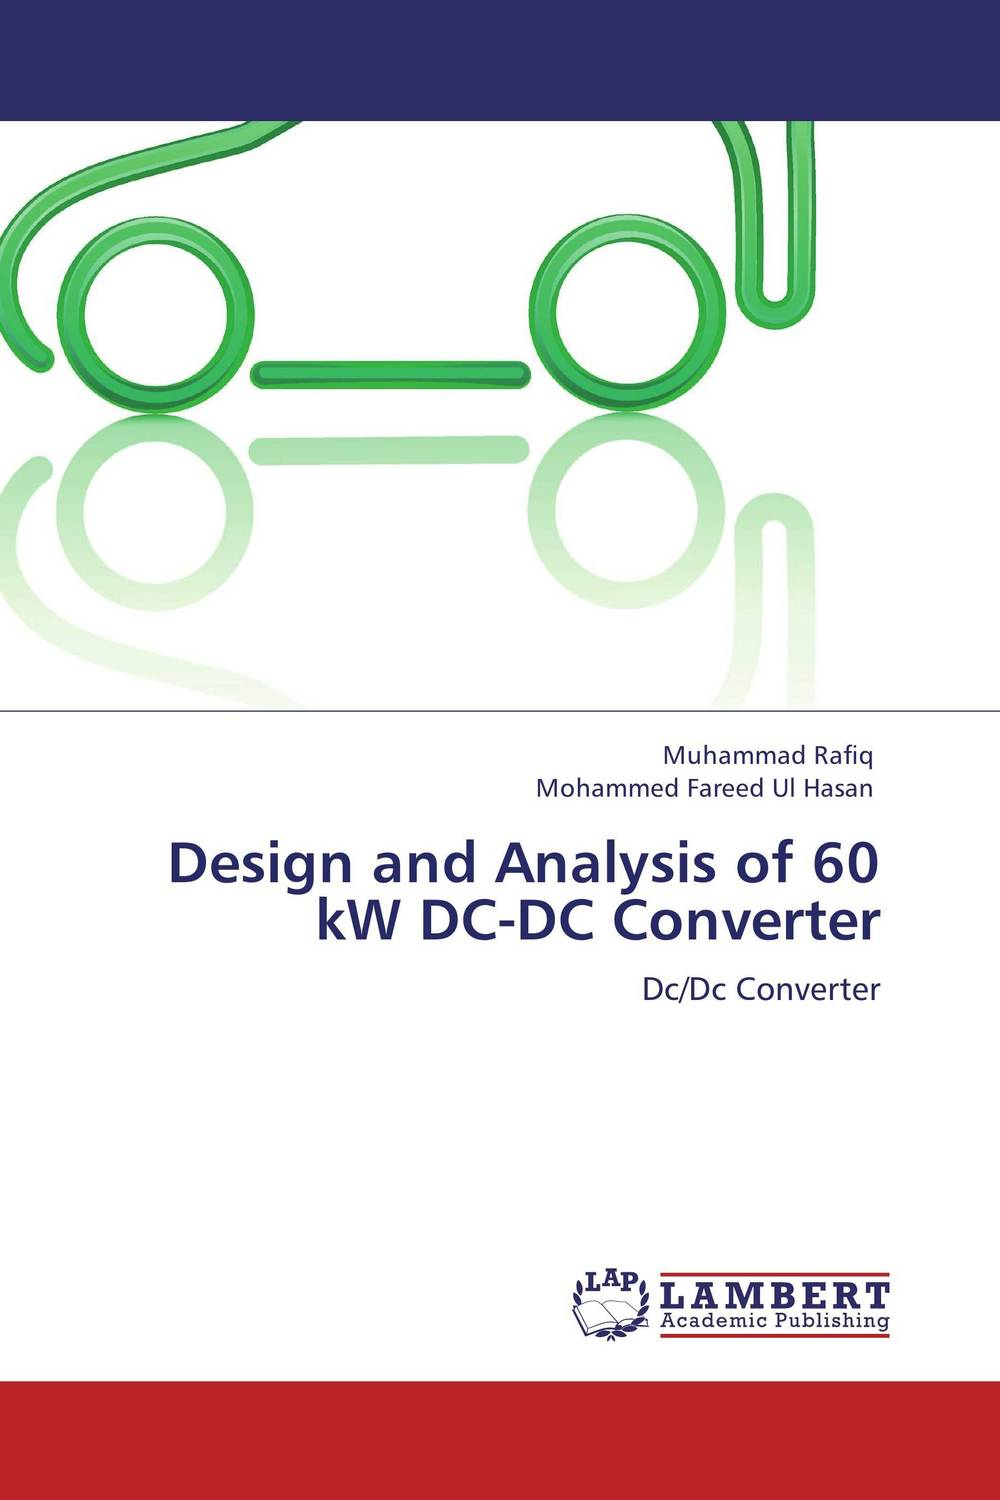 Design and Analysis of 60 kW DC-DC Converter power engineering ebook collection